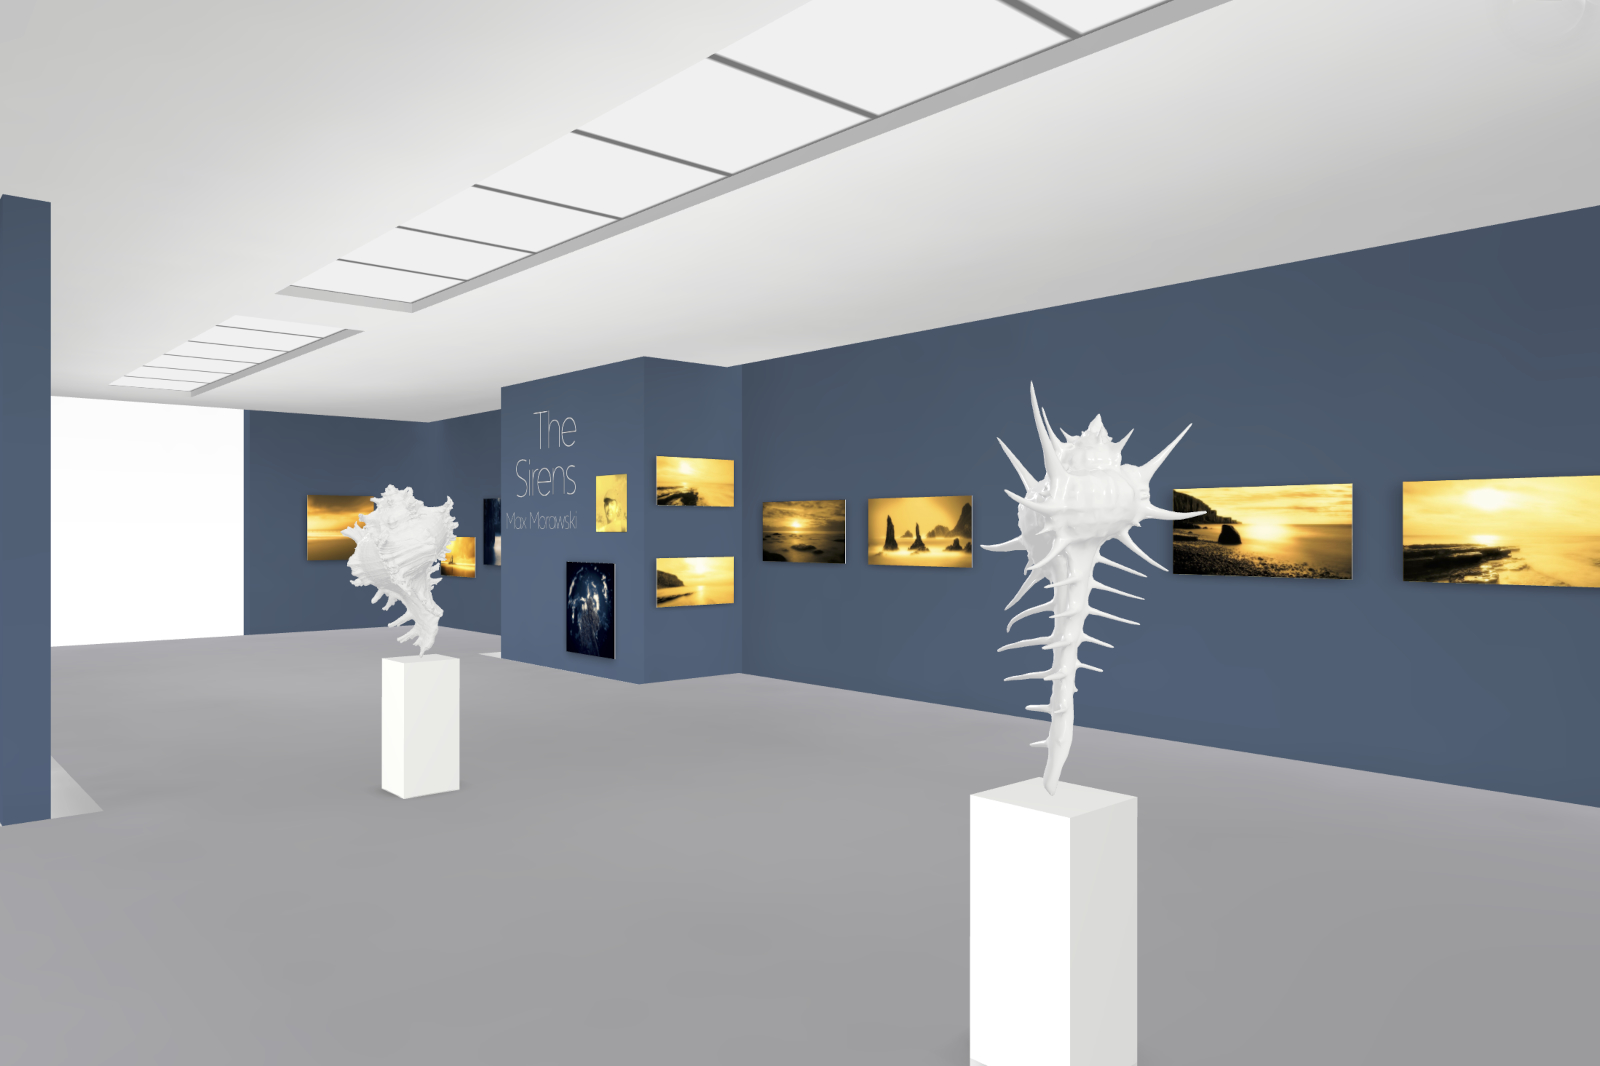 Visiting virtual exhibition 'The Sirens'